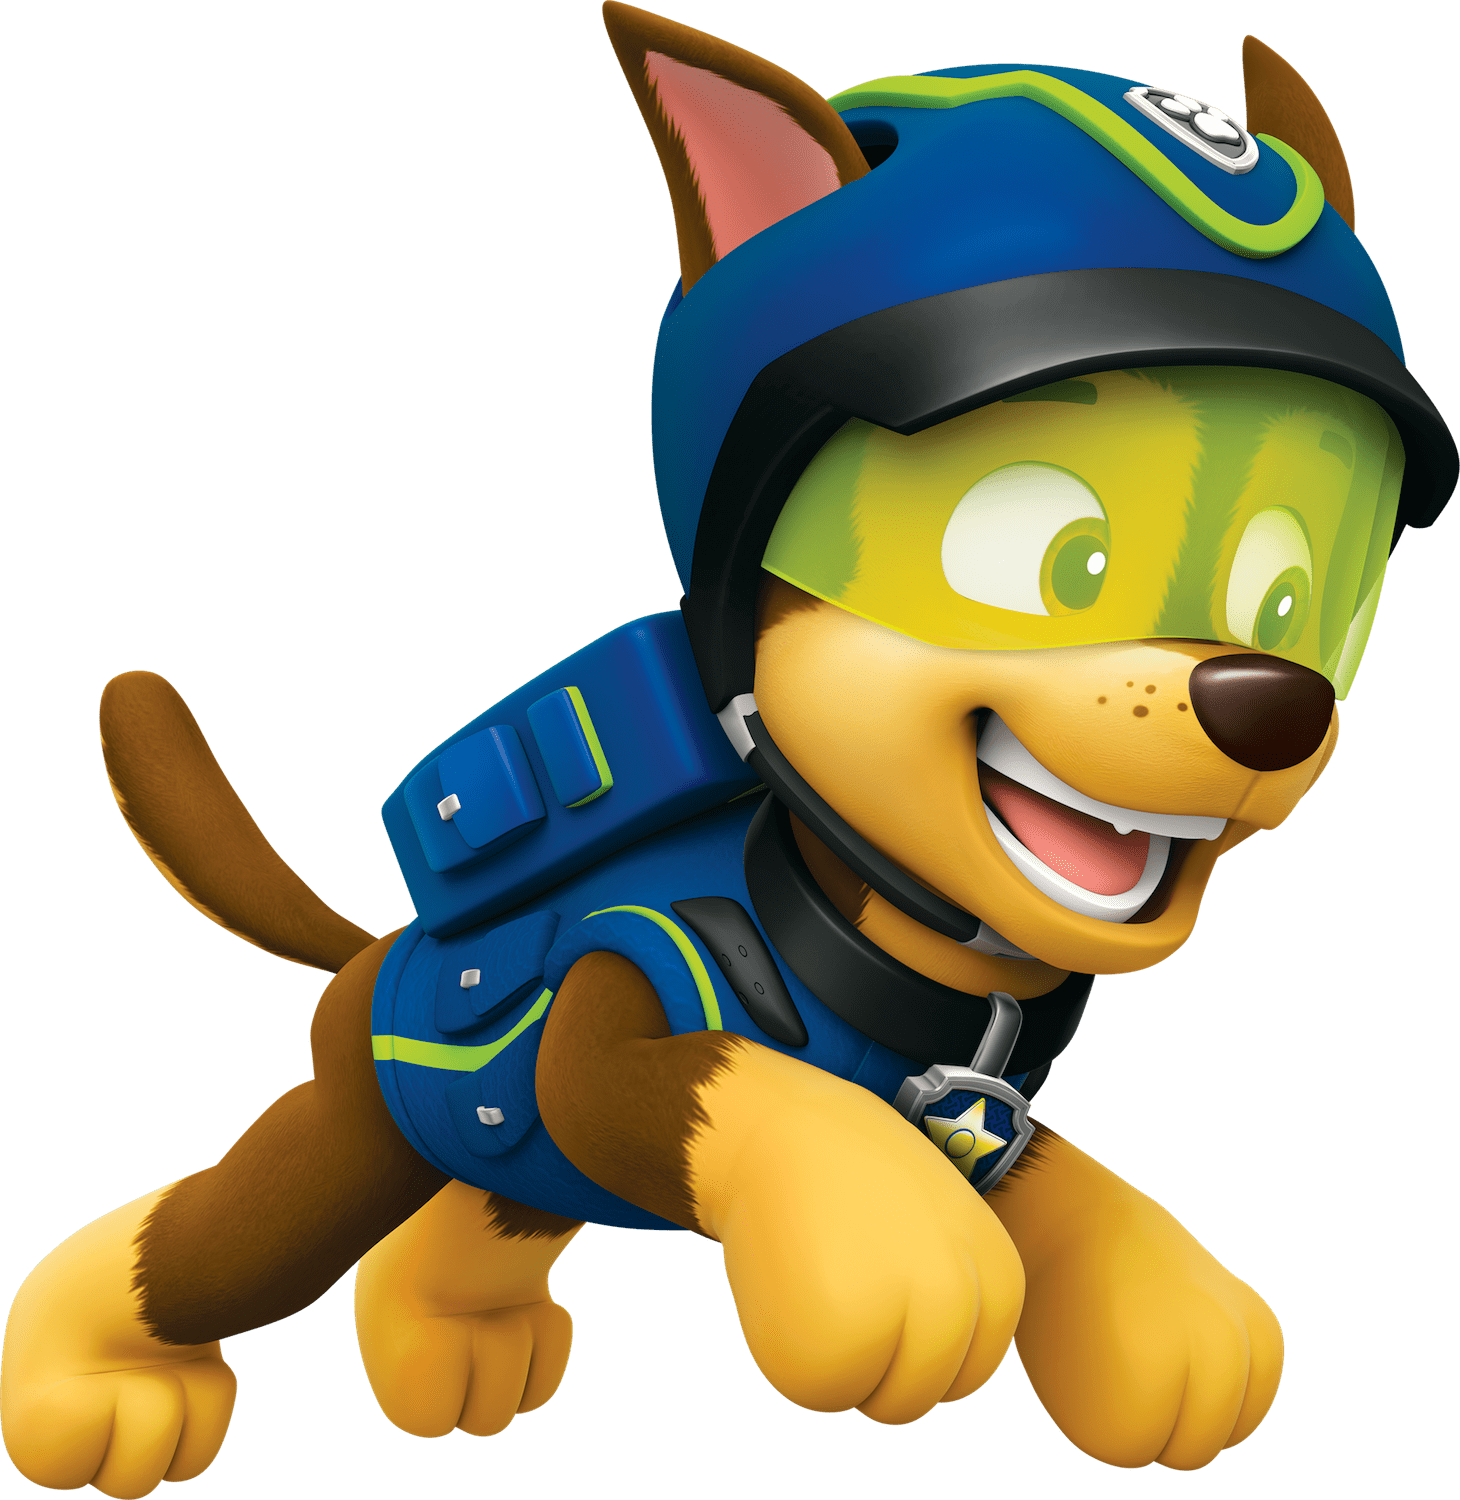 Paw patrol chase clipart freeuse library Chase Jump Paw Patrol Clipart Png freeuse library